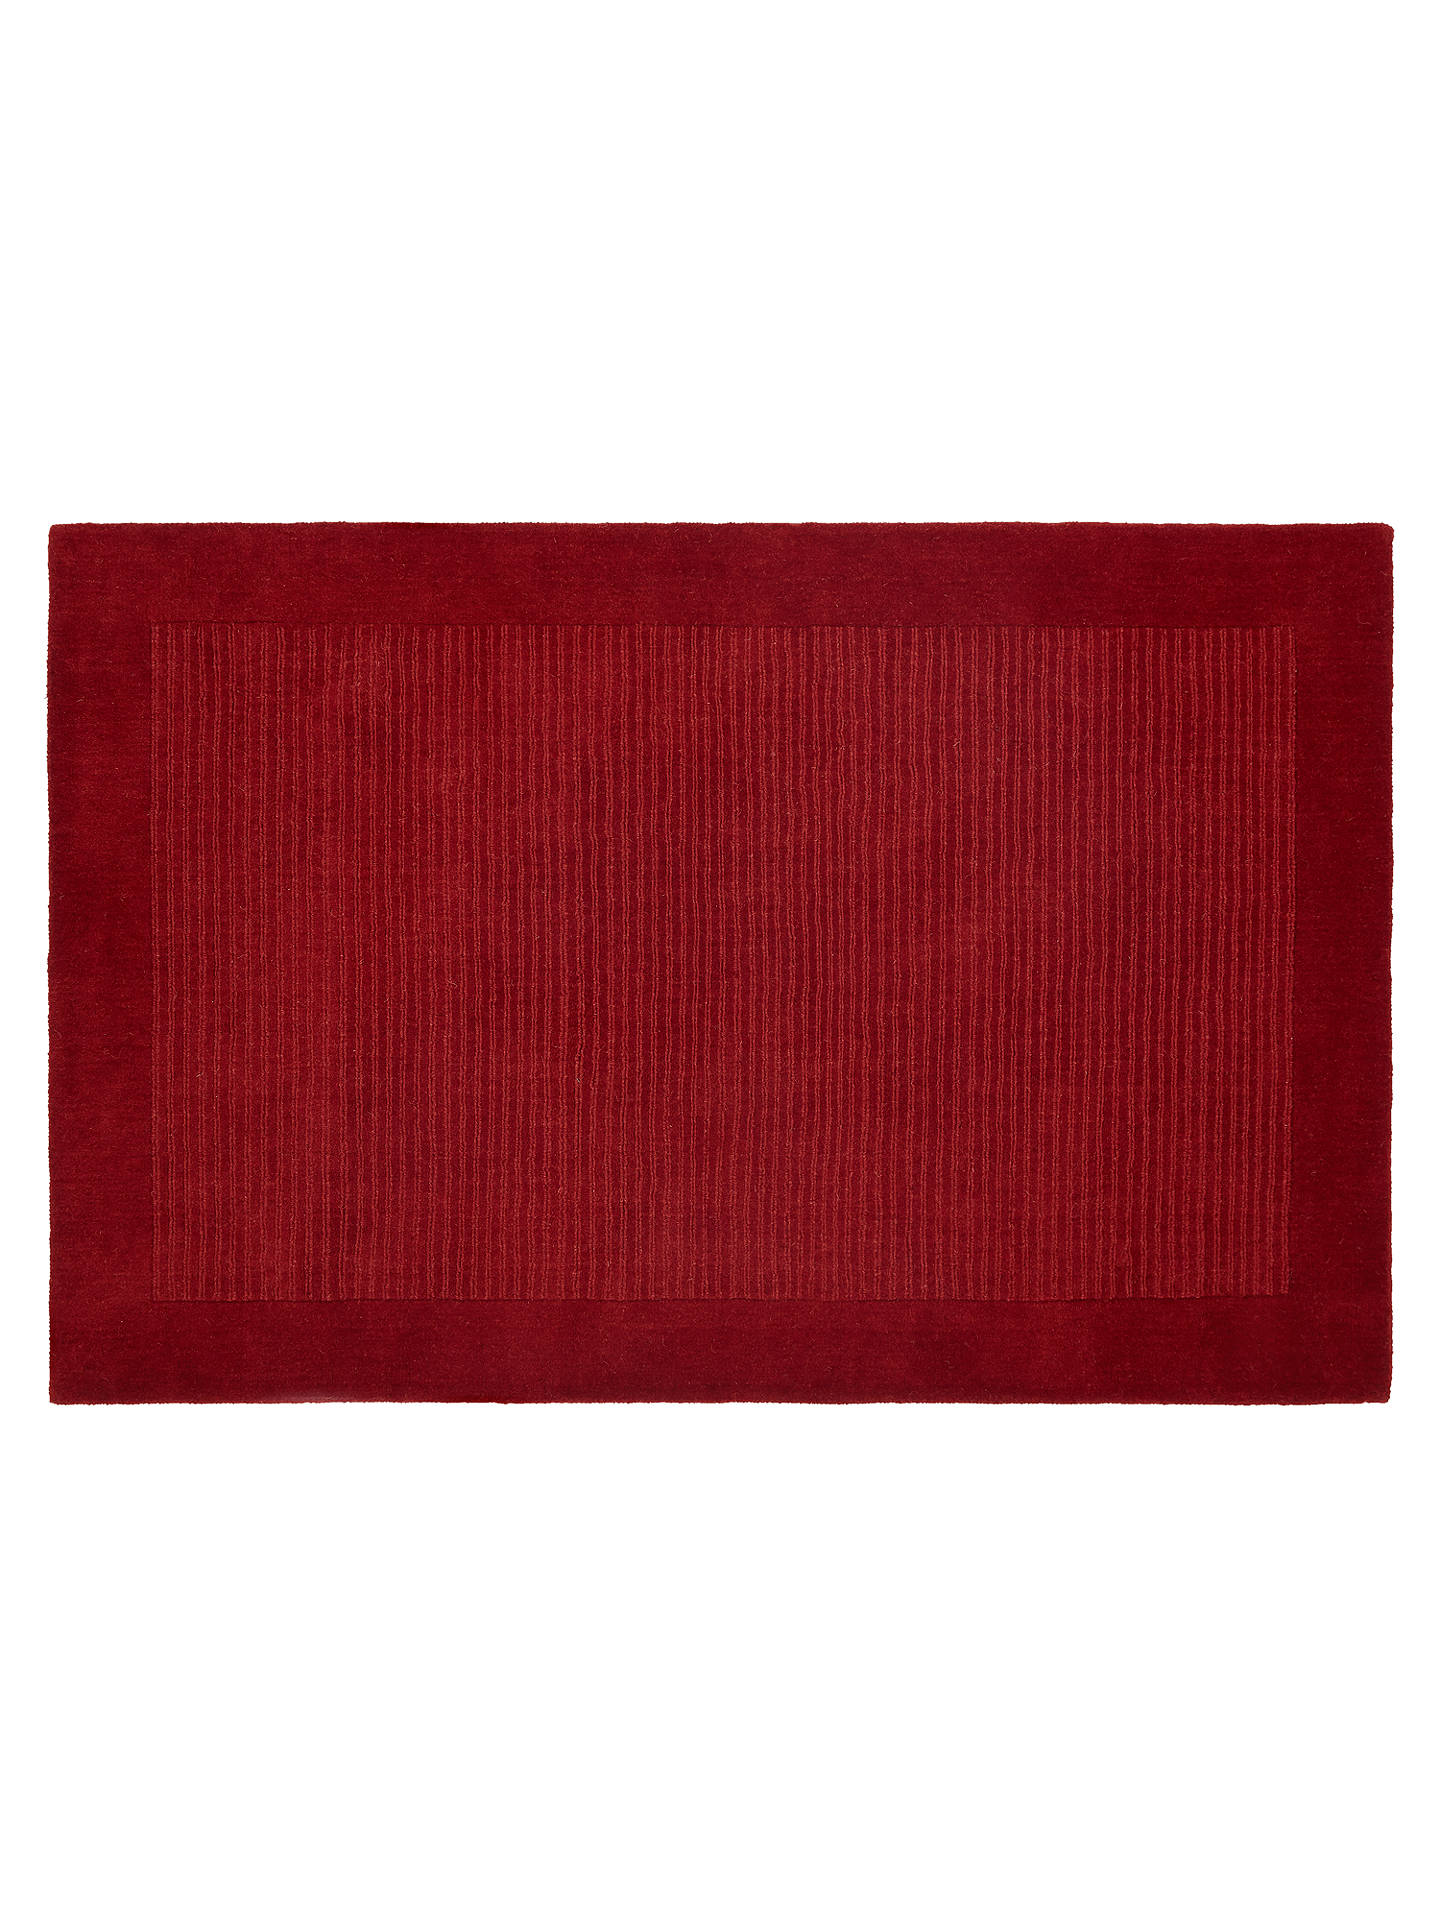 Buy John Lewis & Partners Perth Rug, Red, L300 x W200cm Online at johnlewis.com